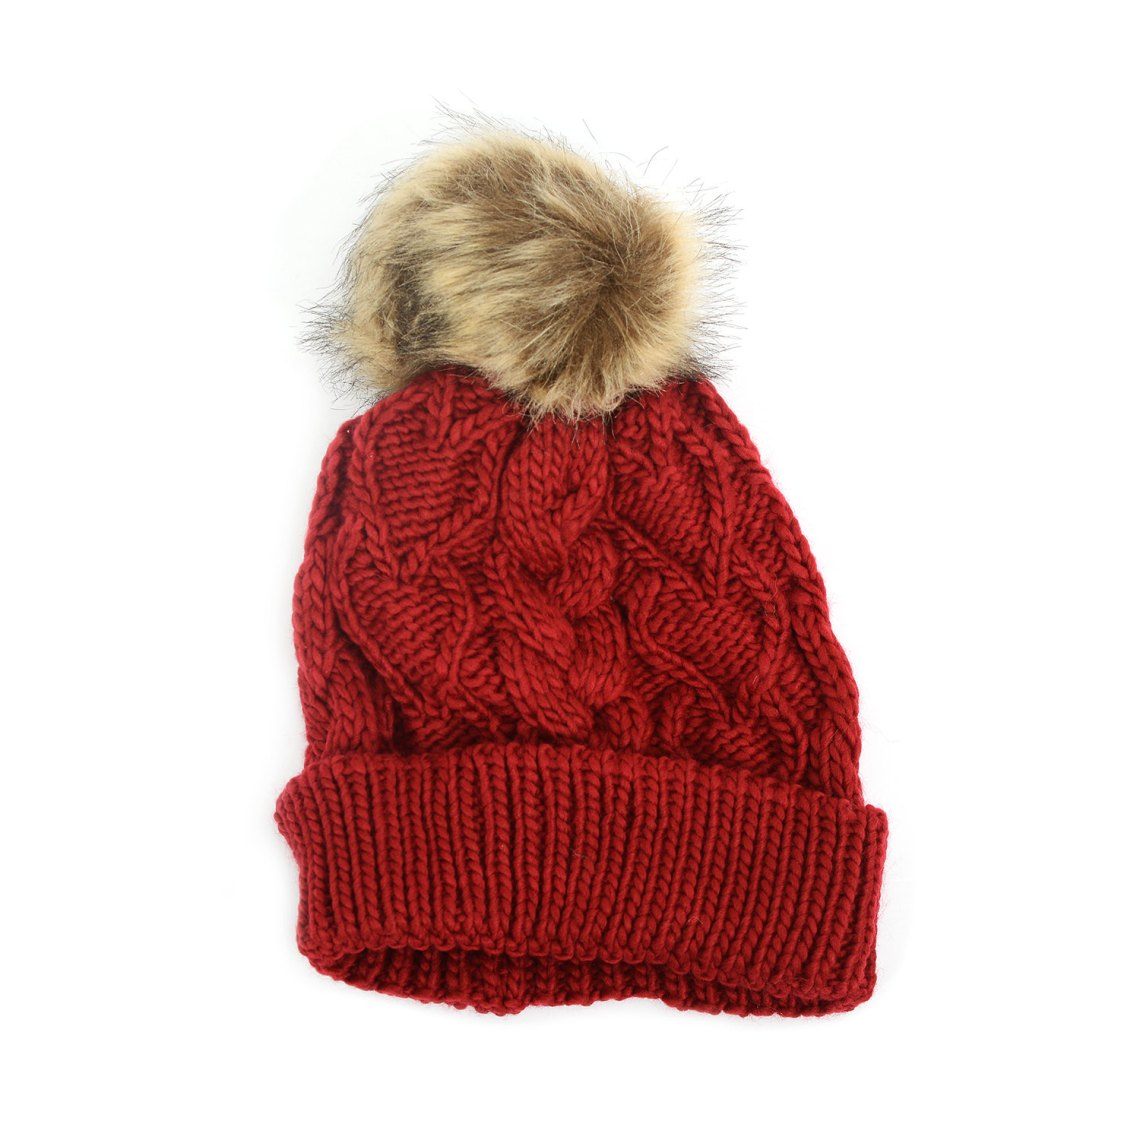 winter accessories - knitted hat